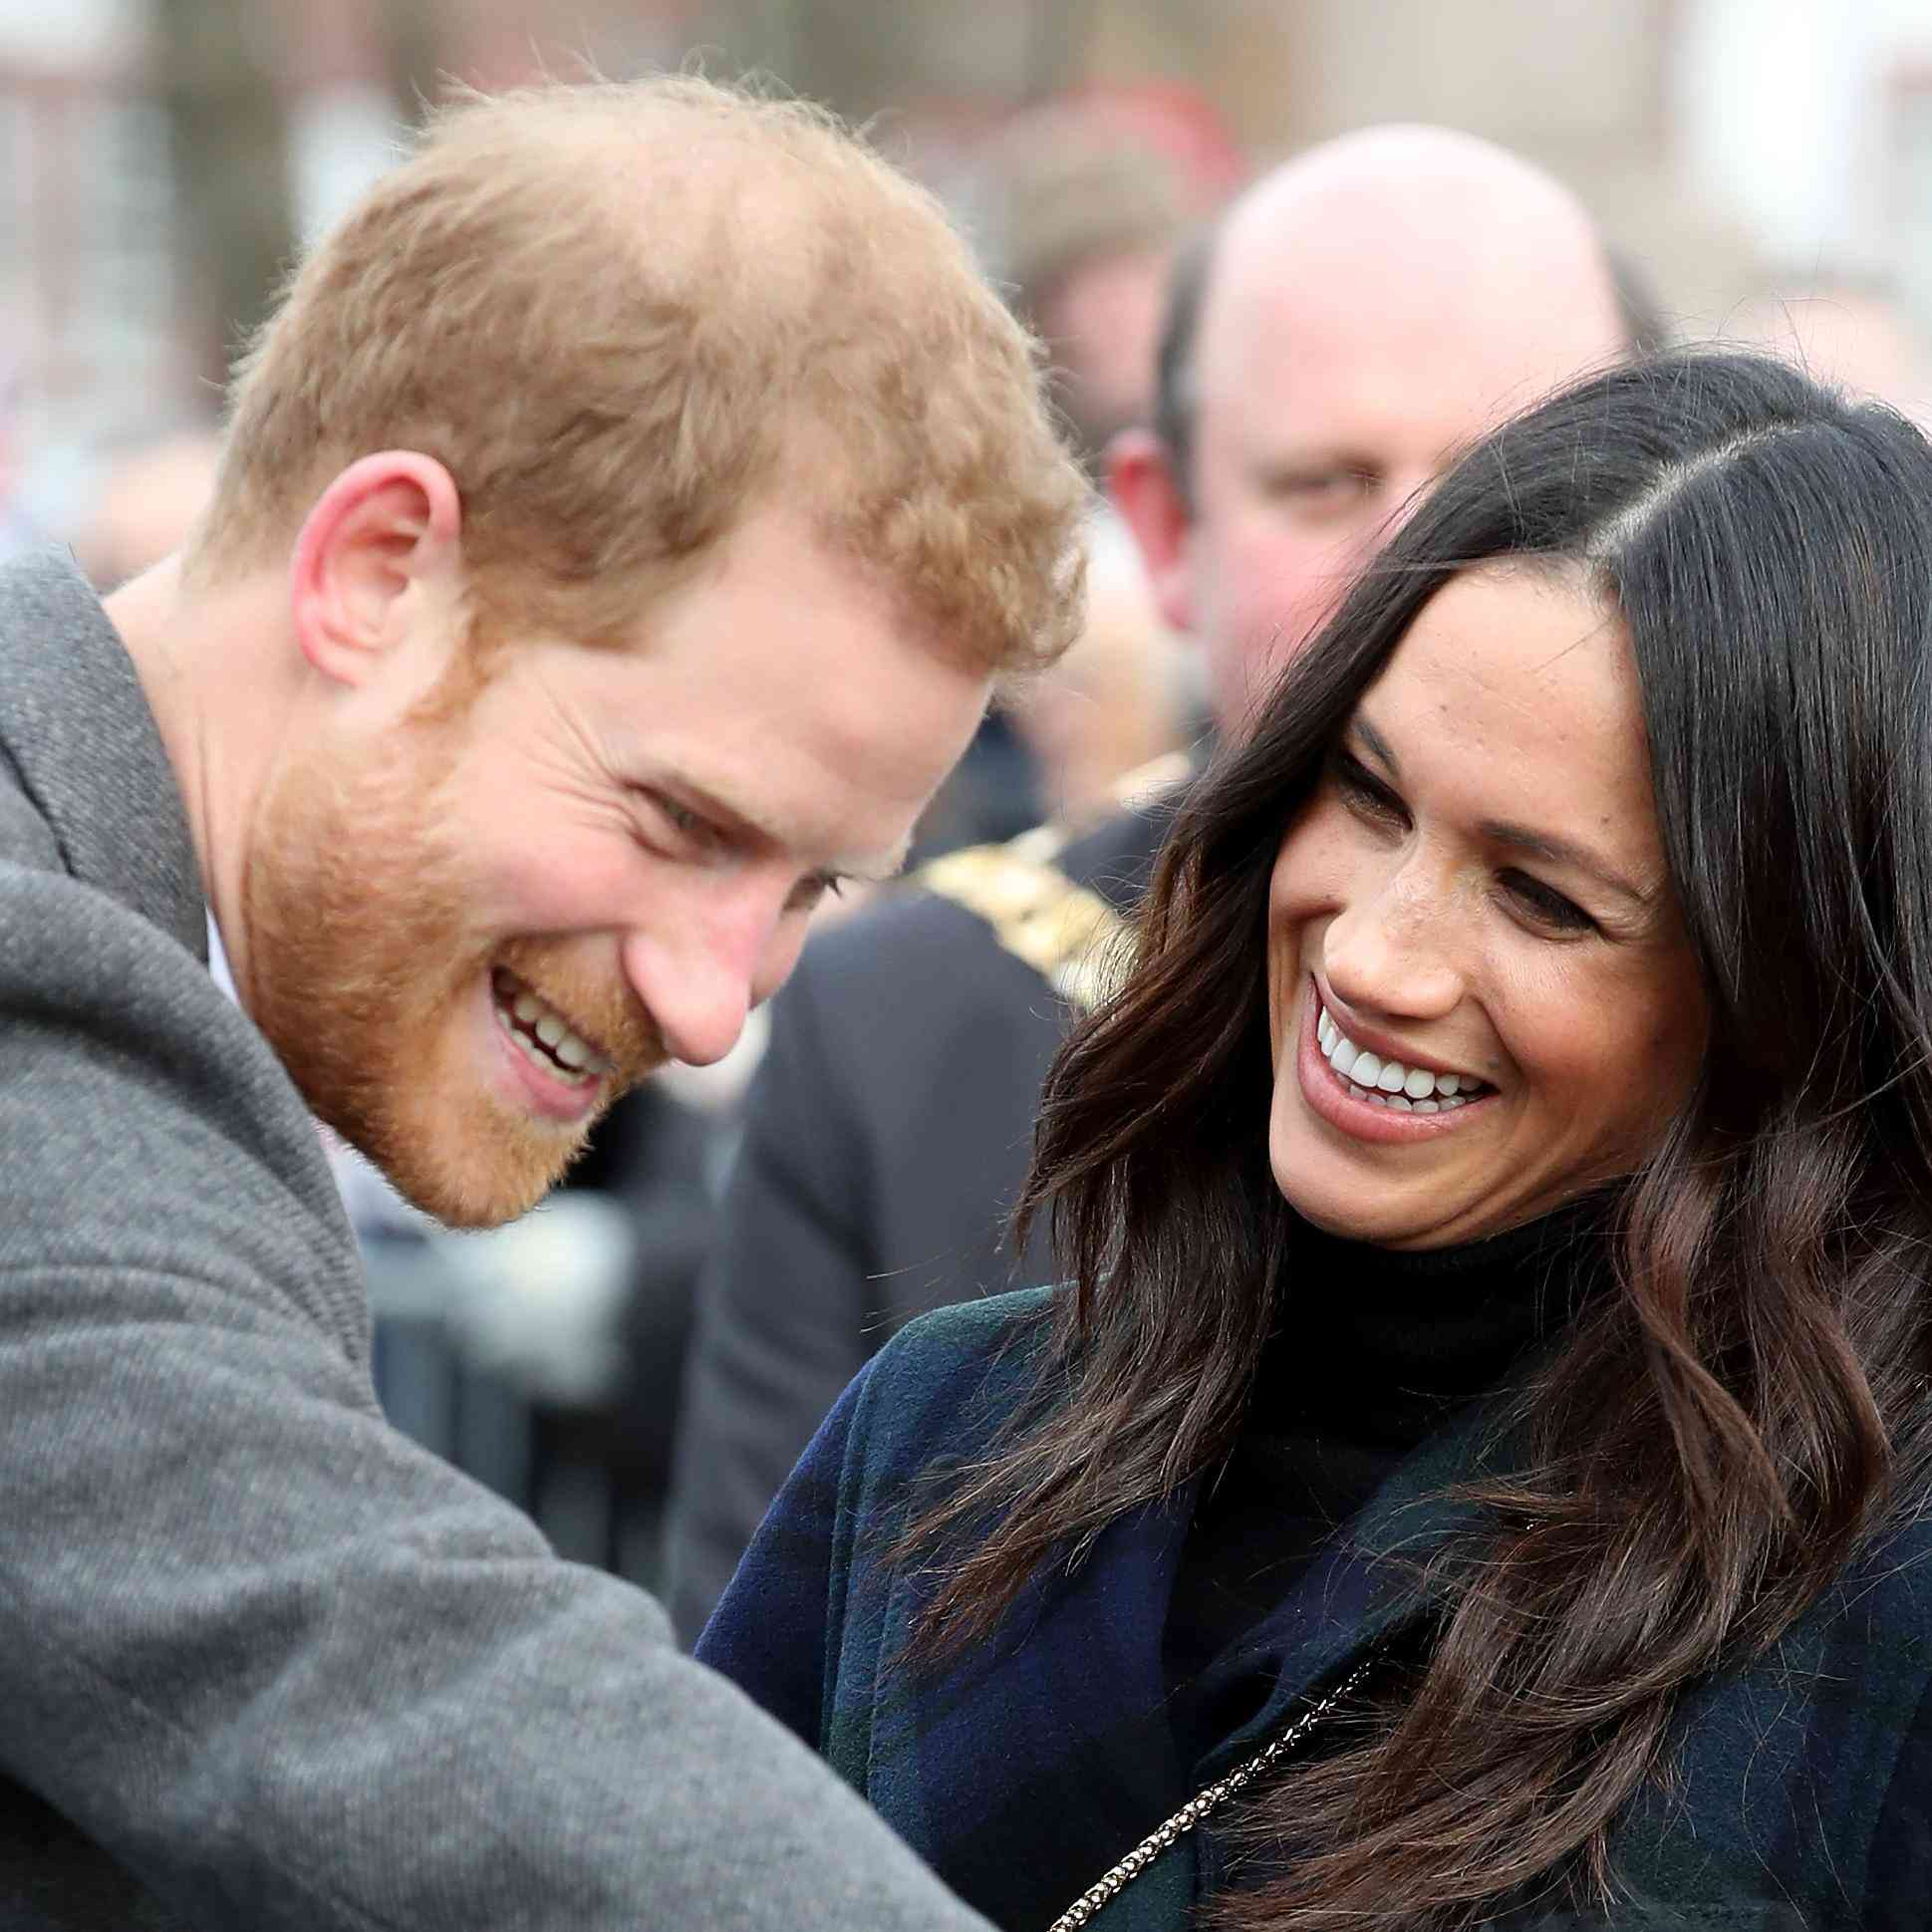 Royal Wedding Watch.Calling All Royal Wedding Fans You Can Now Watch The Ceremony From